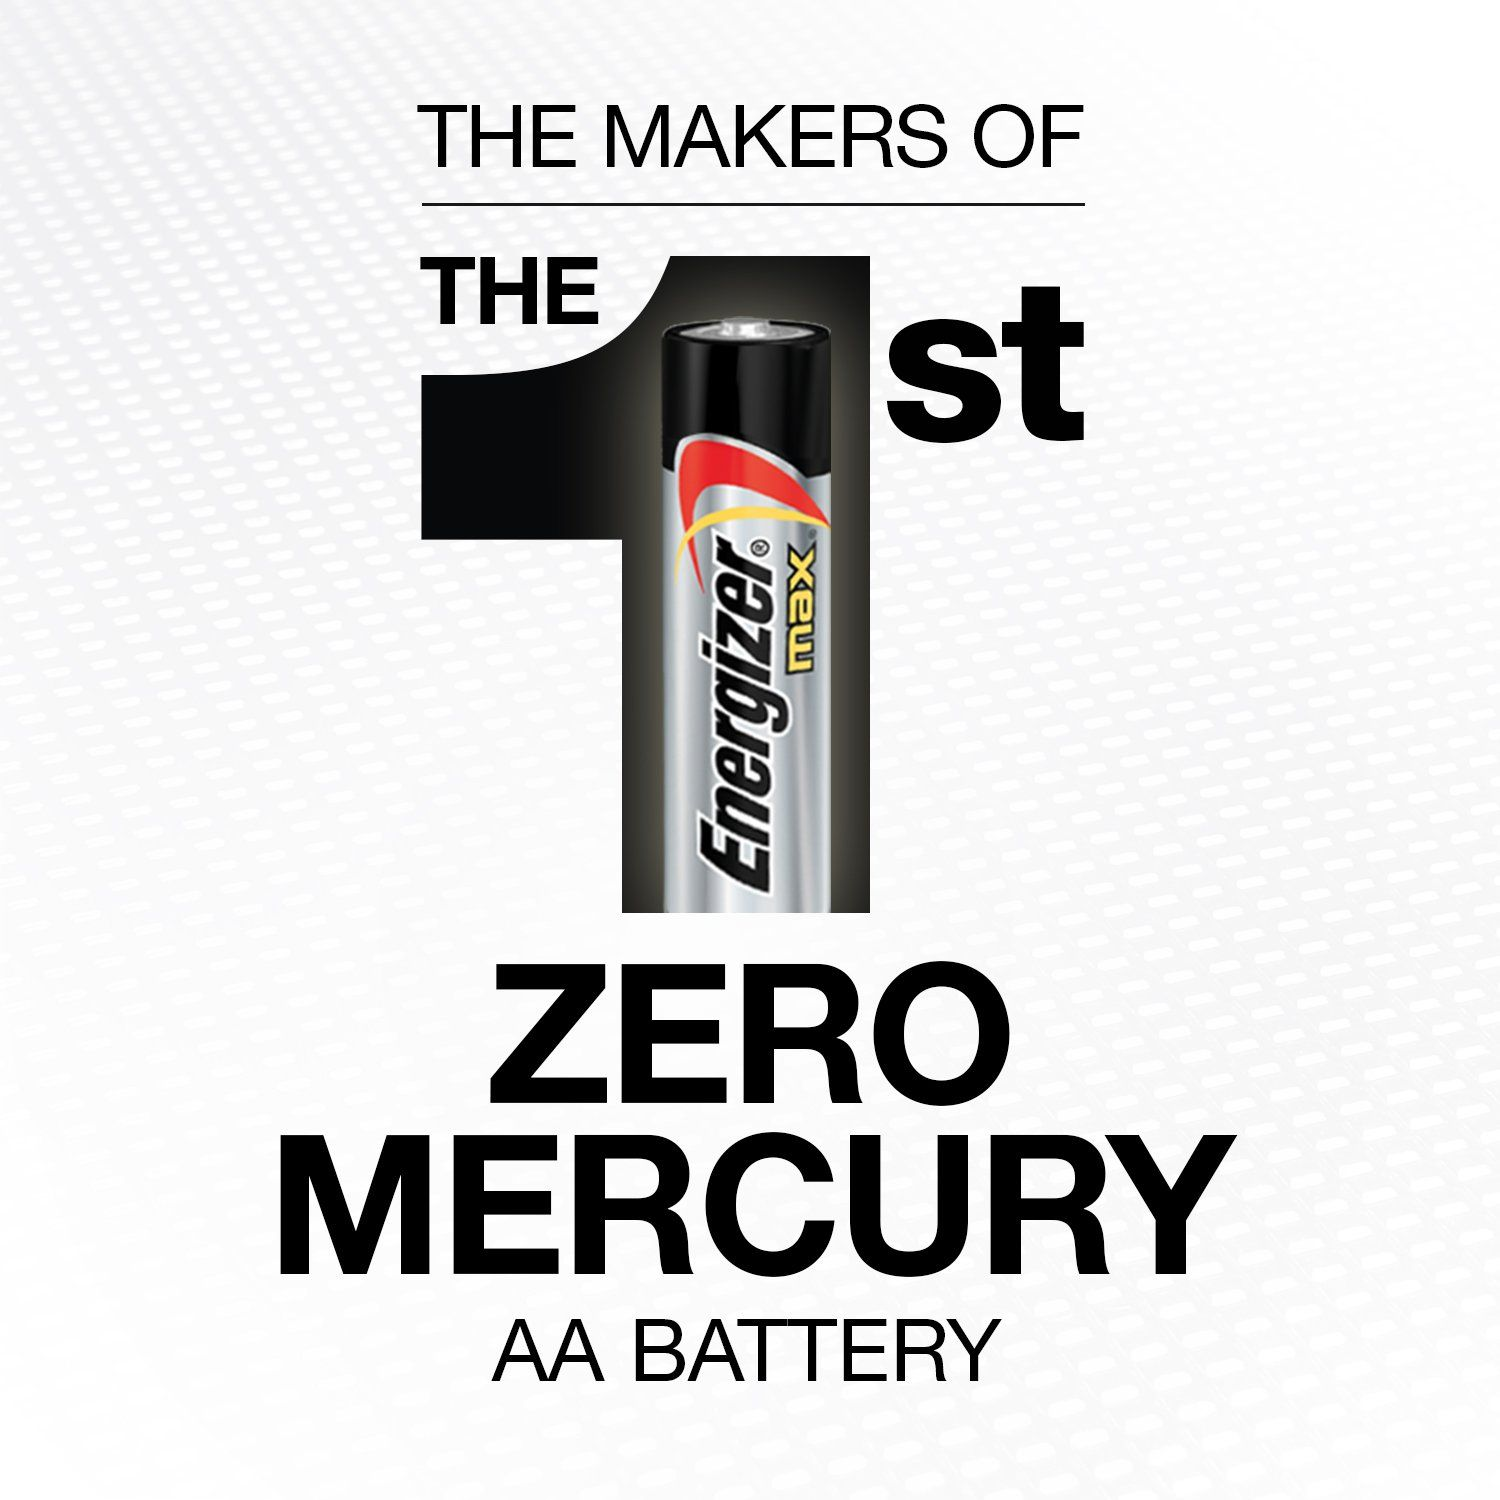 Energizer Aa Batteries Double A Battery Max Alkaline 48 Count Batteries Double Energizer Aa Energizer Energizer Battery Alkaline Battery